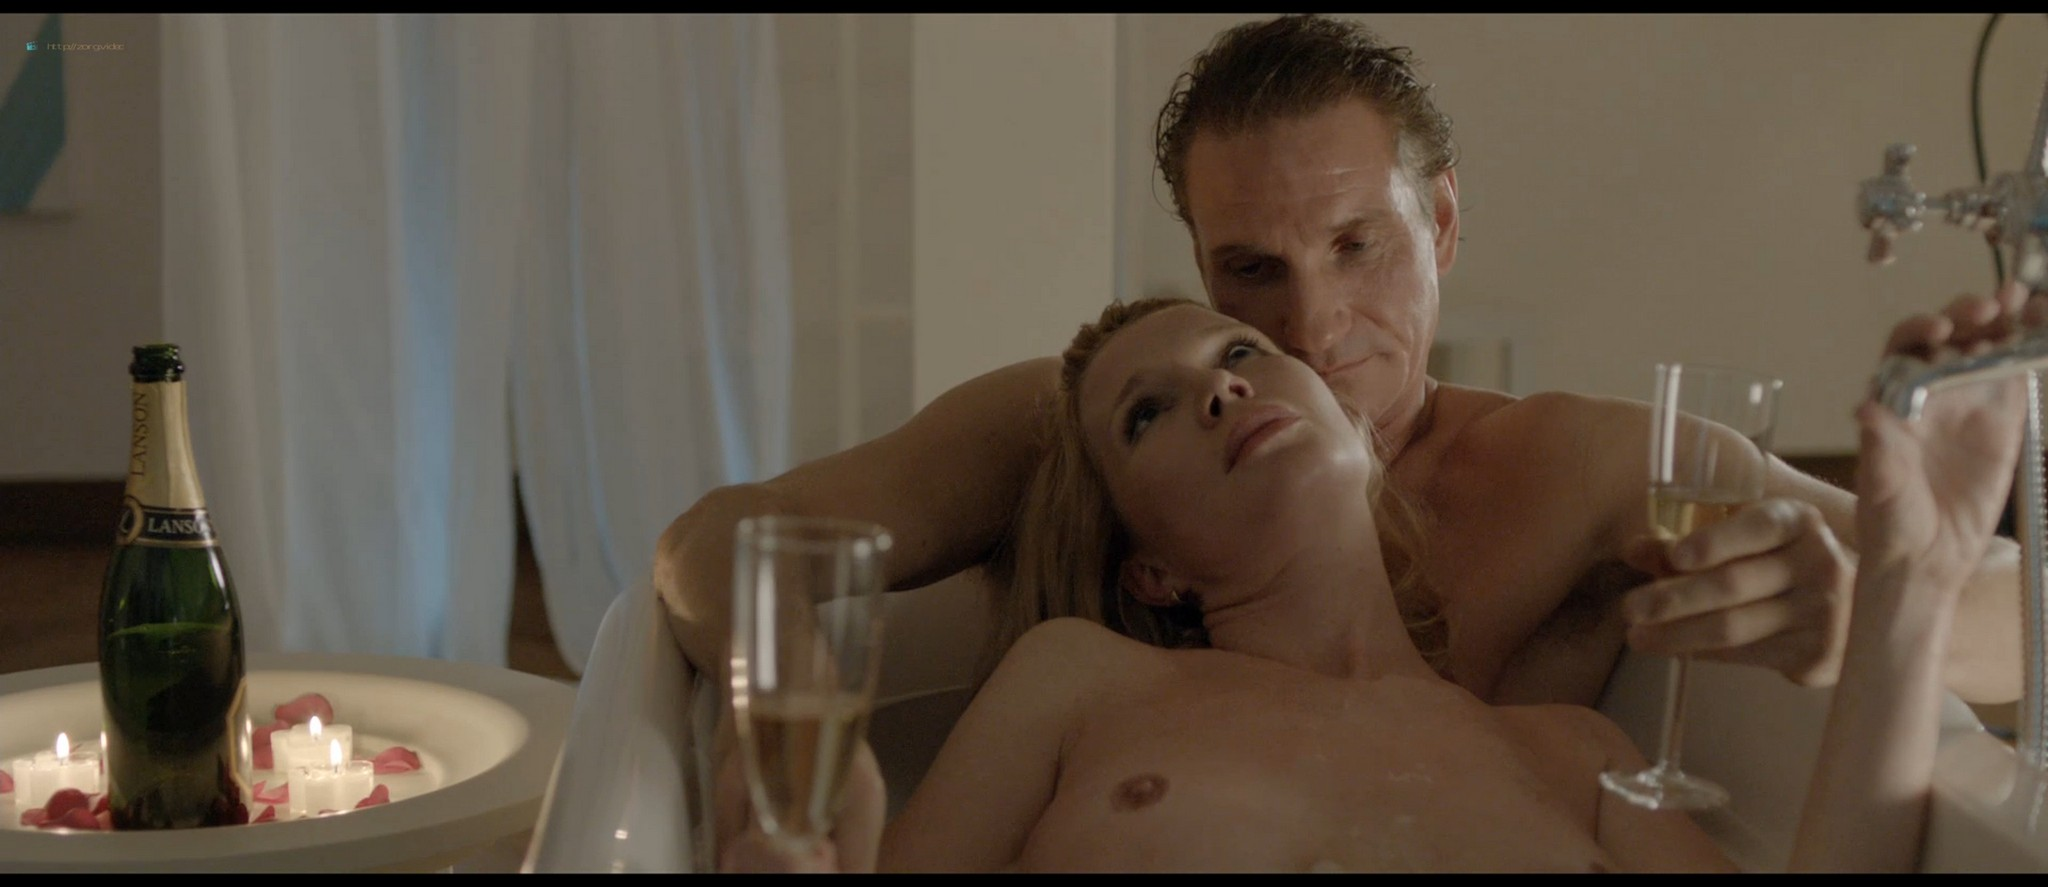 Tjitske Reidinga nude and some sex - De verbouwing (2012) HD 1080p BluRay (3)